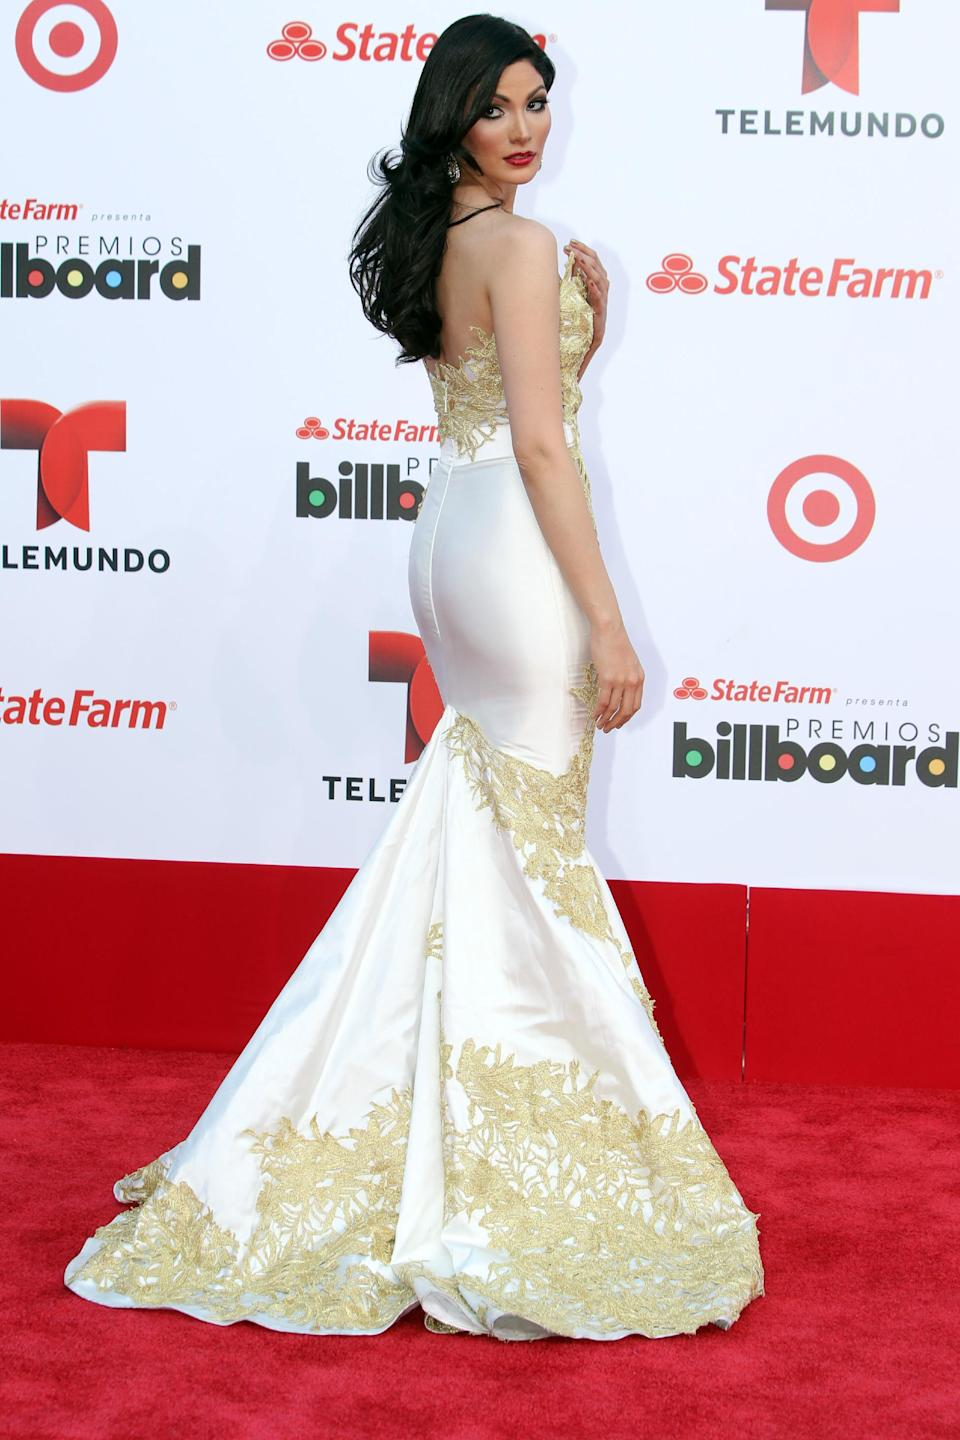 Puerto Rican actress Cynthia Olavarria arrives at the Latin Billboard Awards in Coral Gables, Fla. Thursday, April 25, 2013. (Photo by Carlo Allegri/Invision/AP)